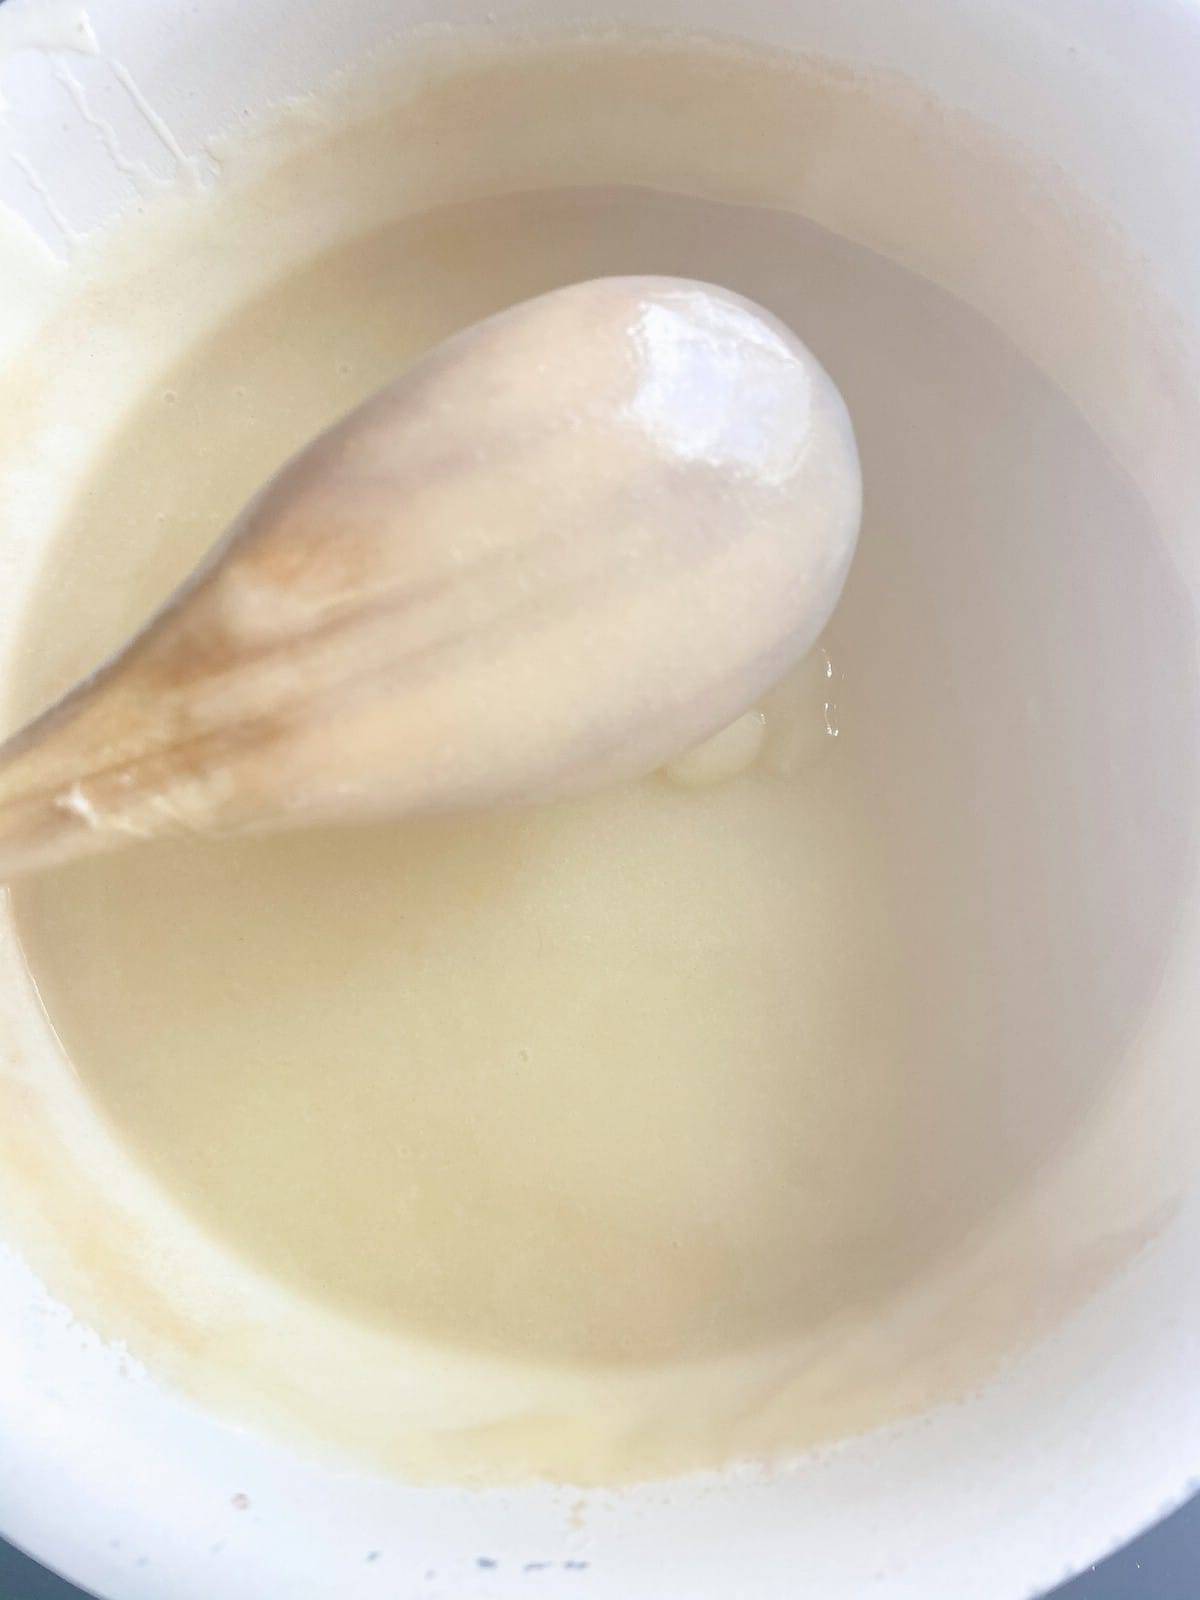 Pudding coating the back of a spoon